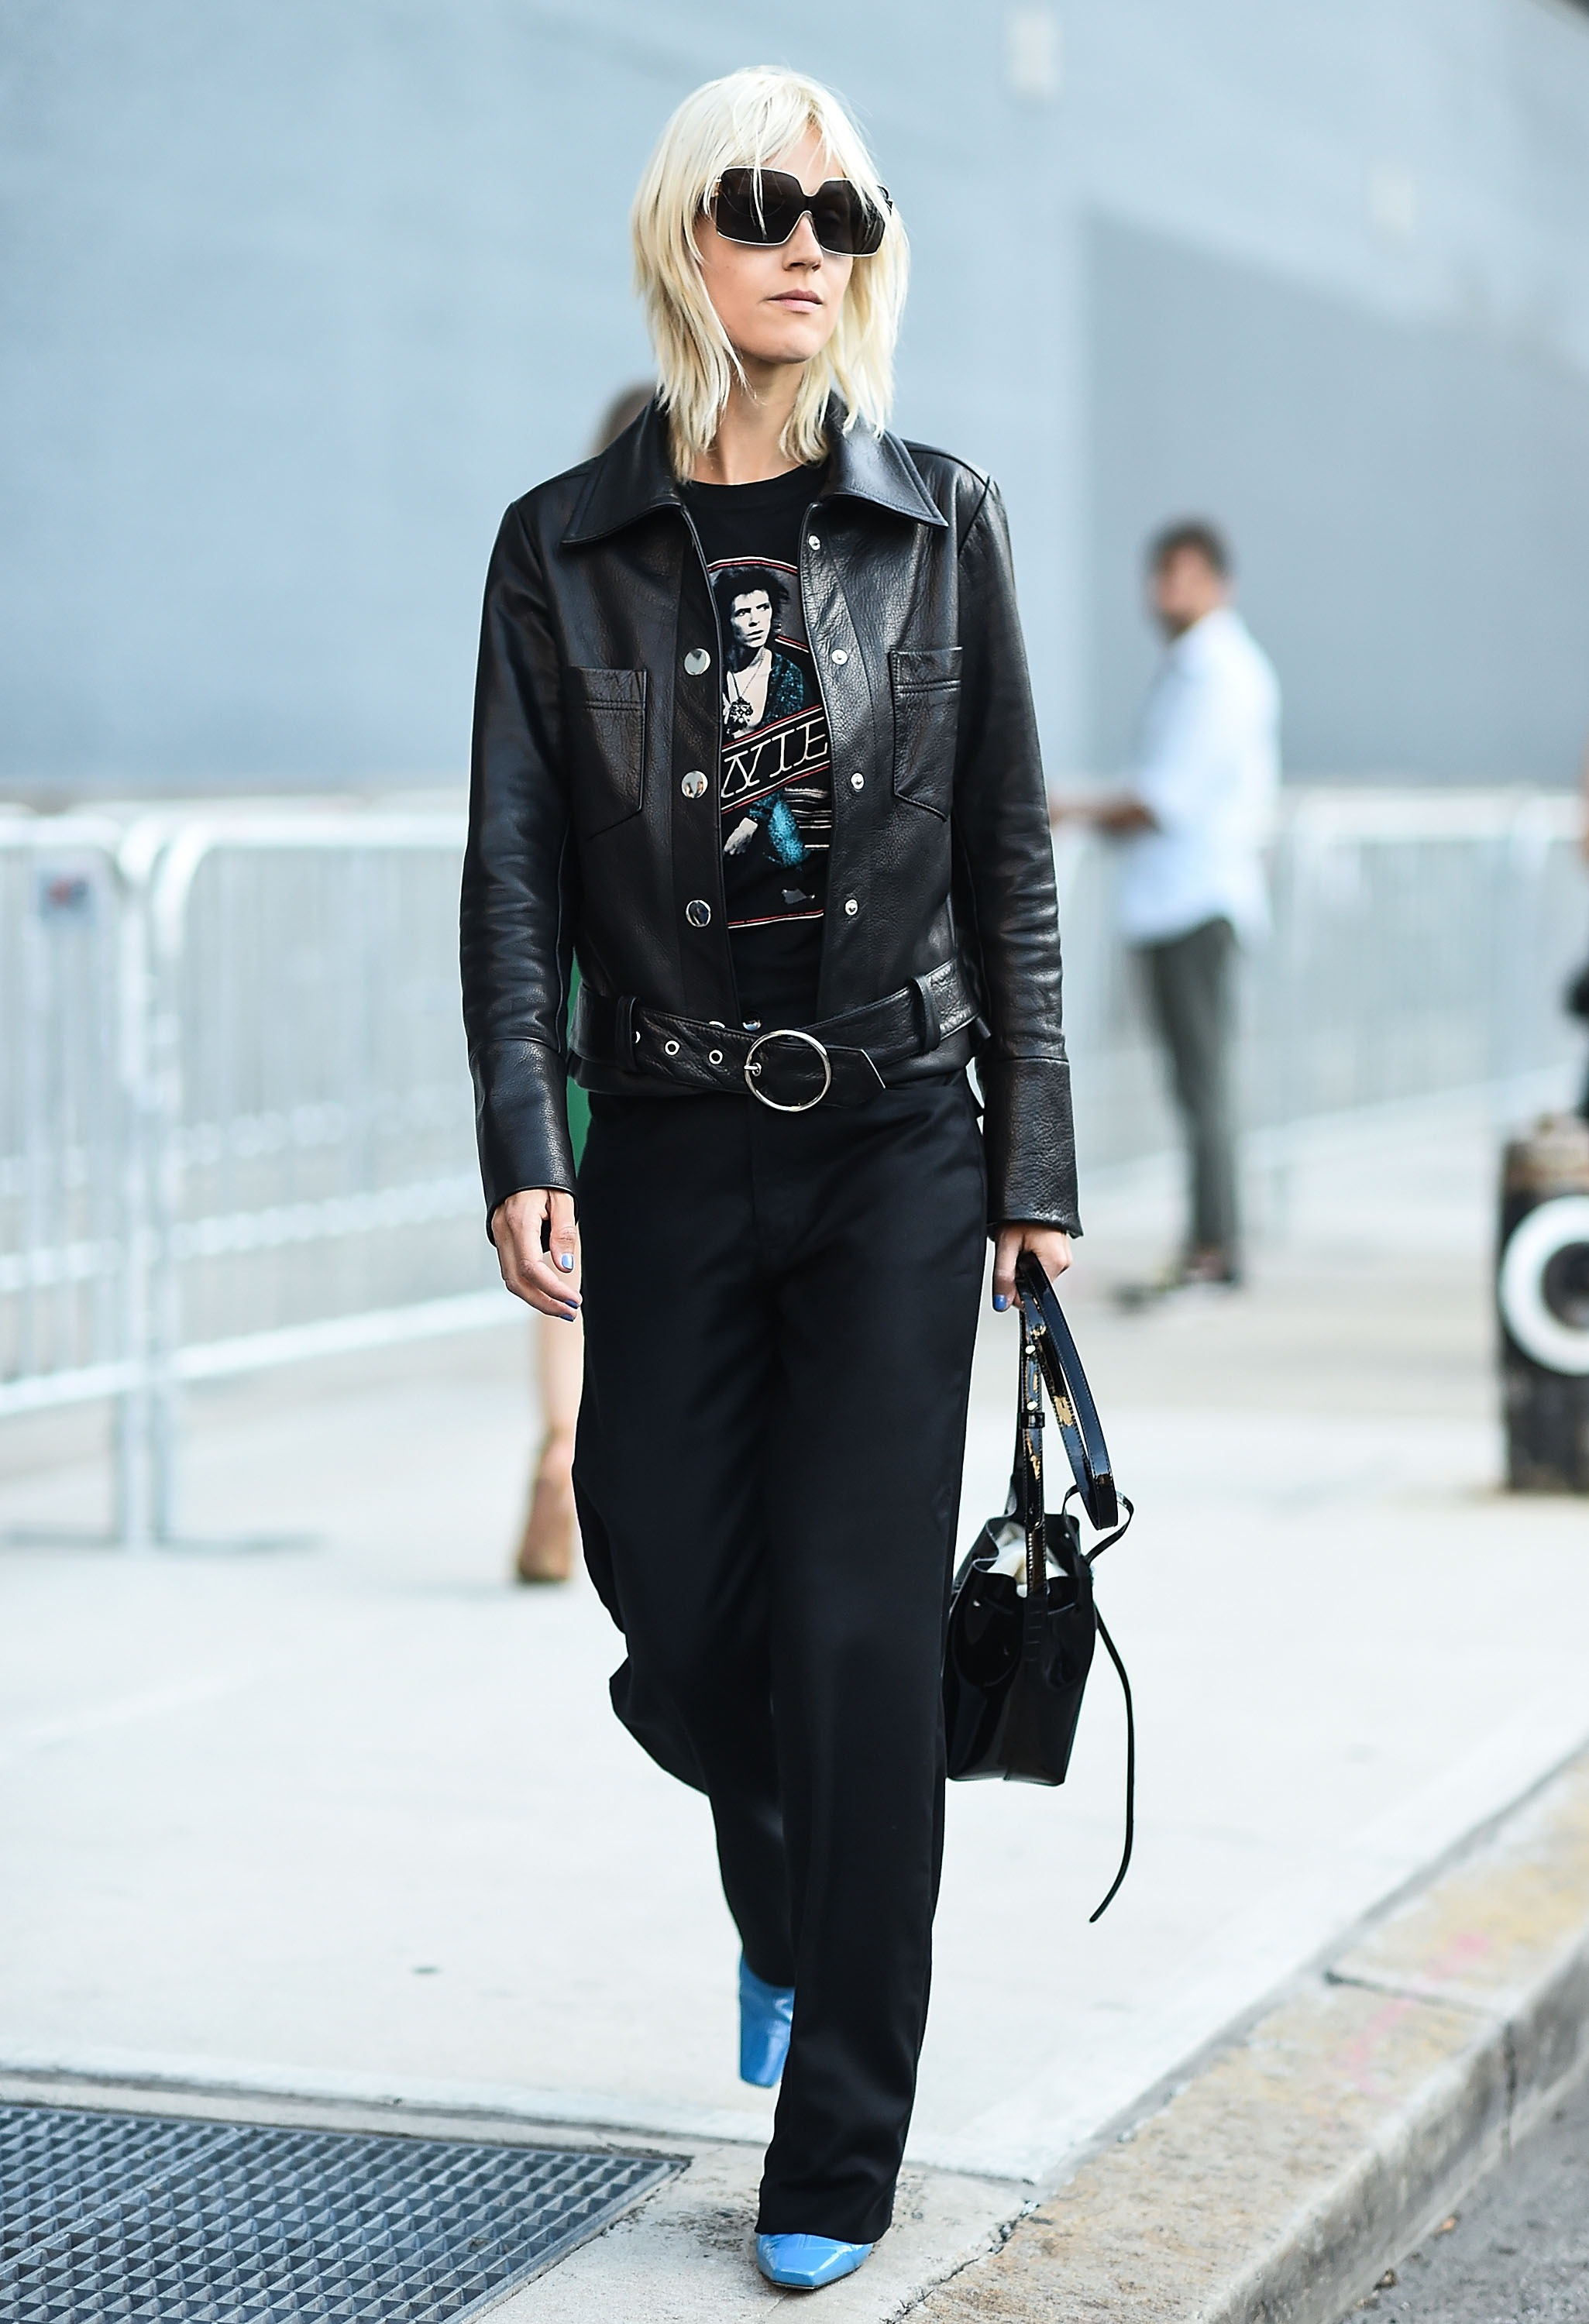 An edgy all-black look gave rocker vibes at the shows.